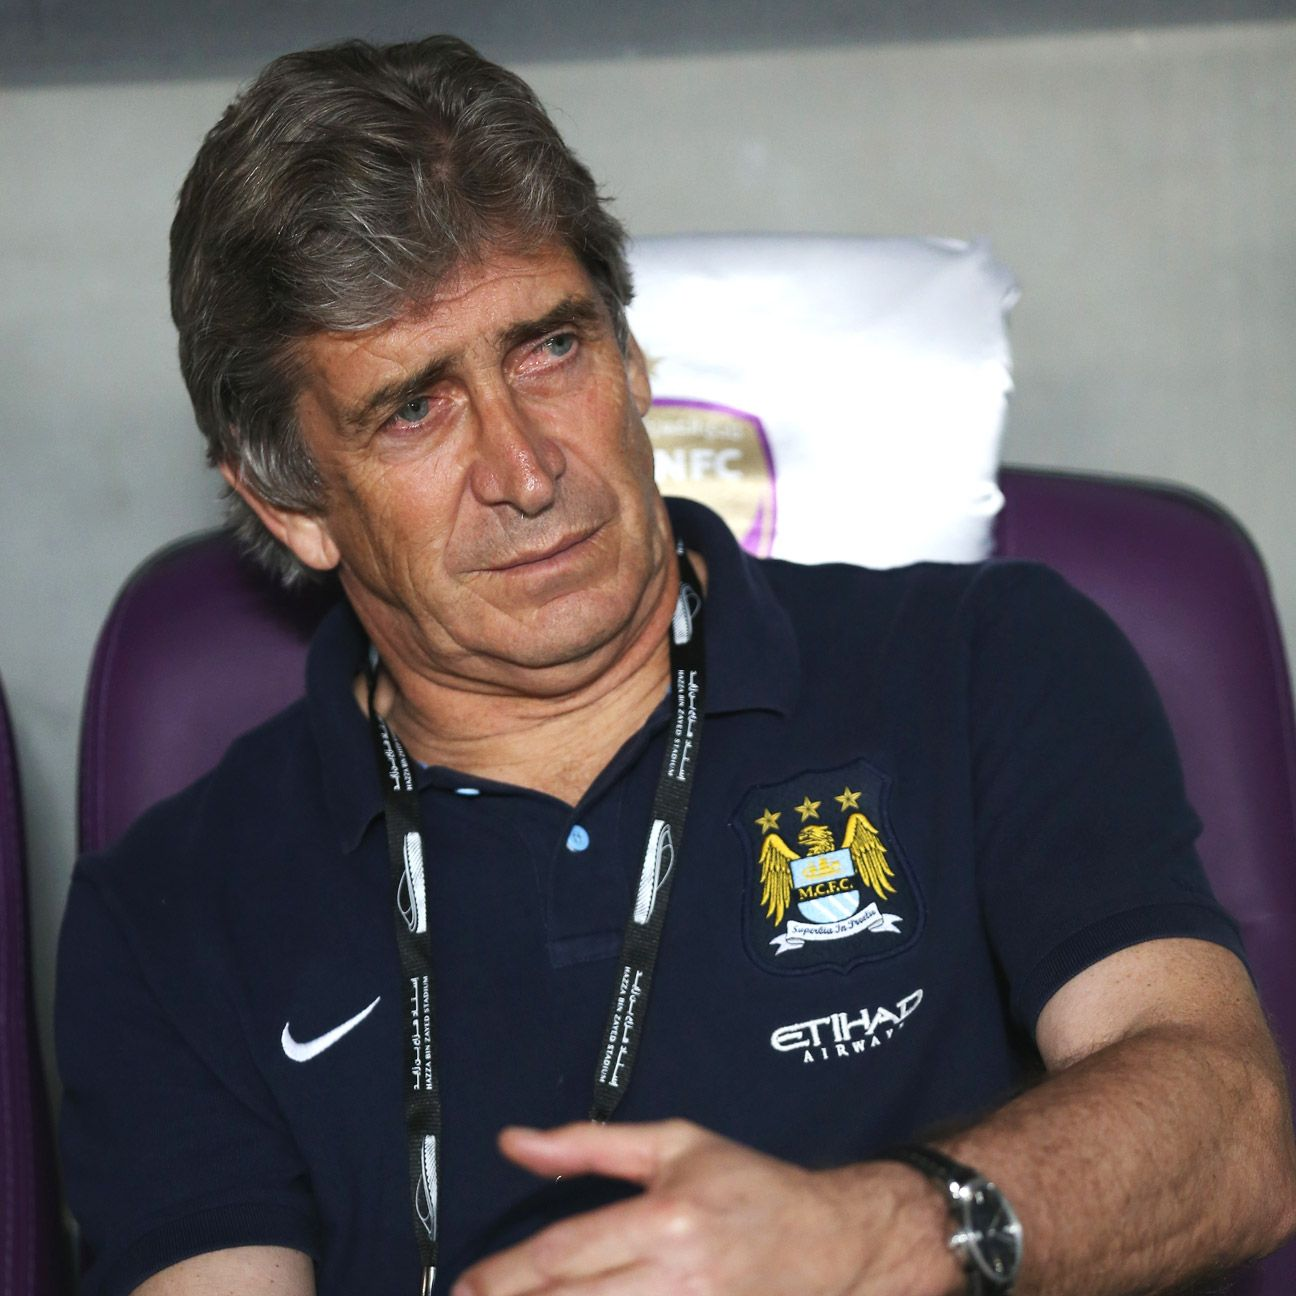 Manchester City  manager Manuel Pellegrini is likely to add a few more pieces in defense prior to the start of the Premier League season.